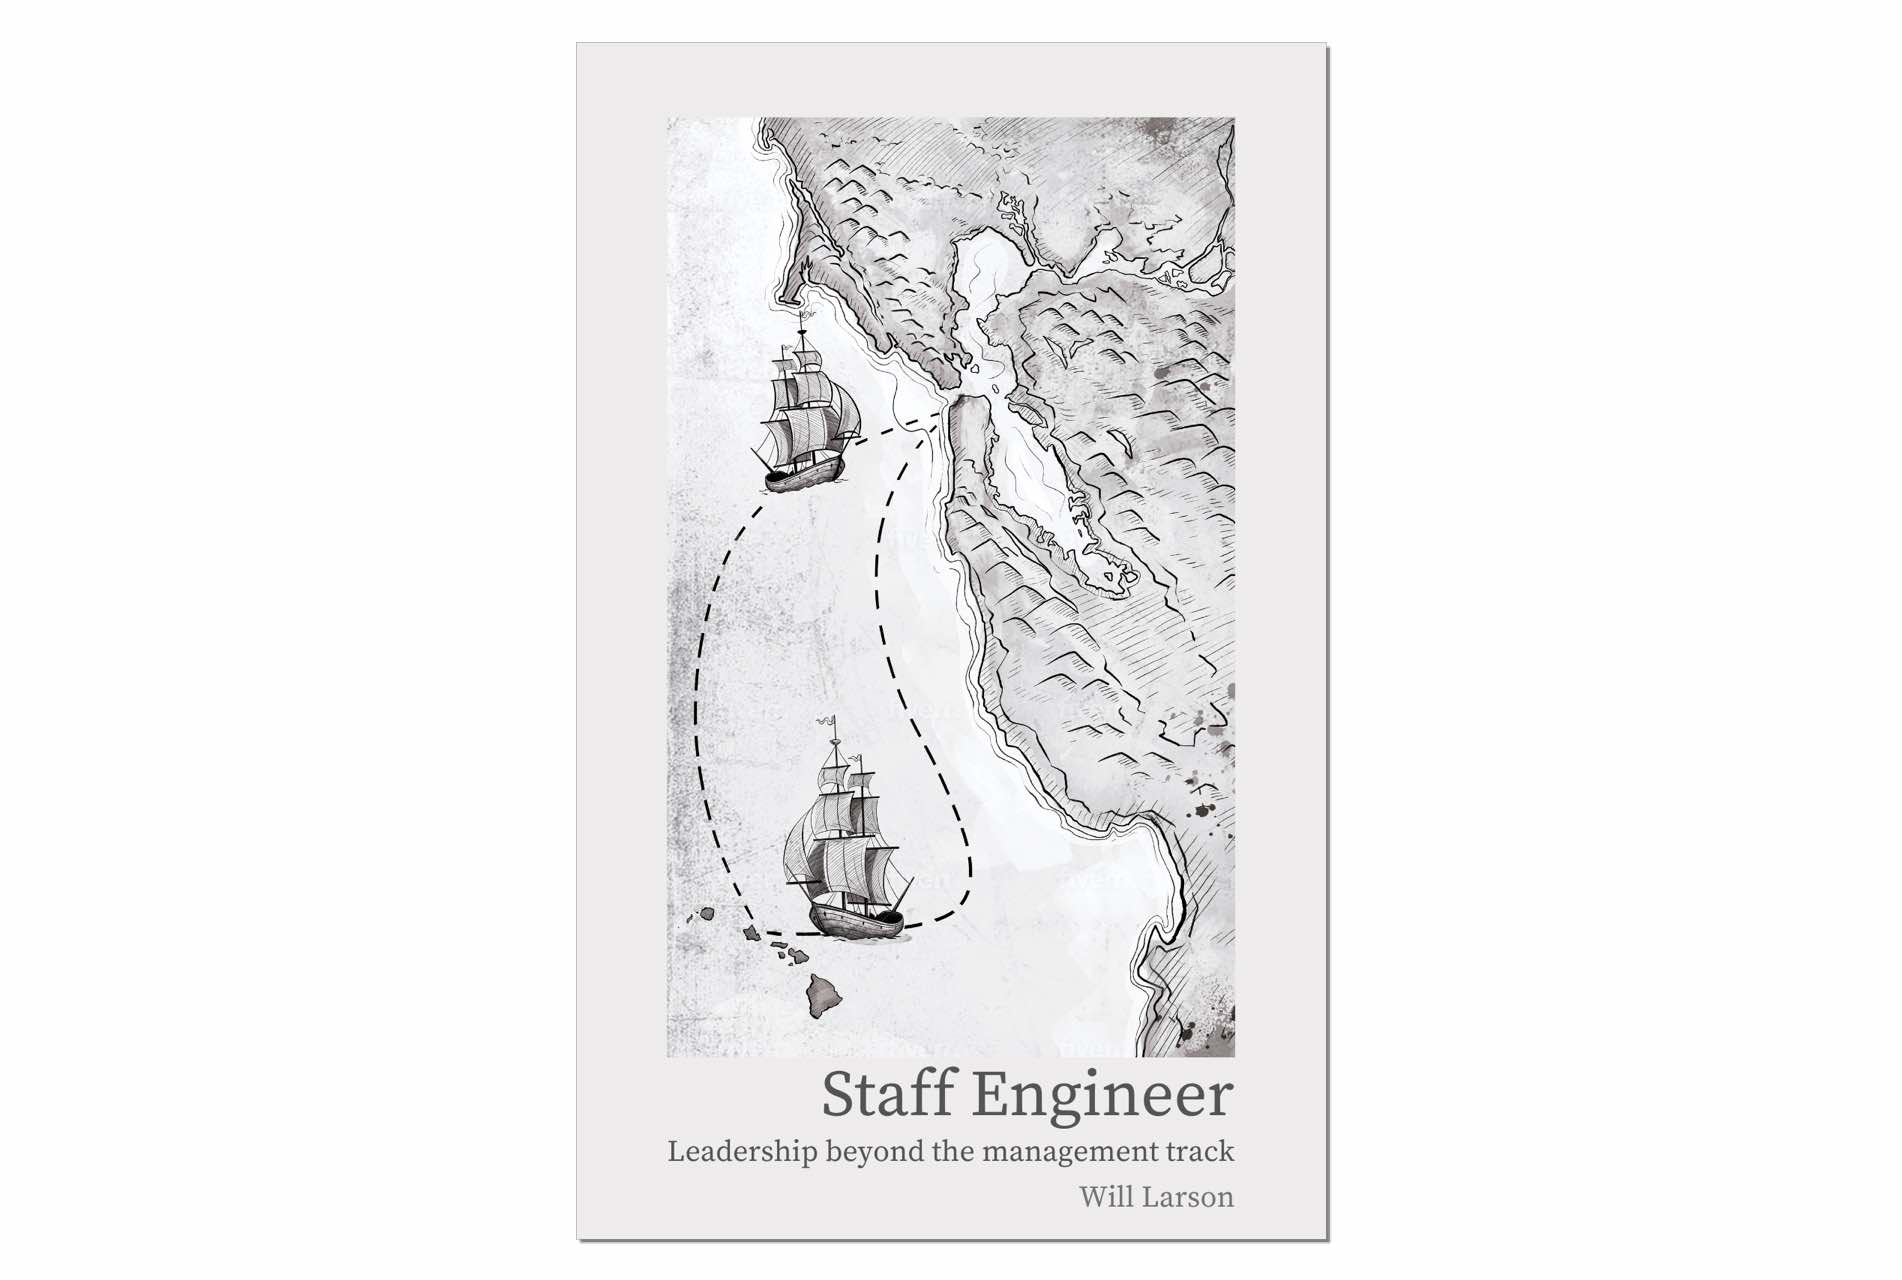 Staff Engineer book cover